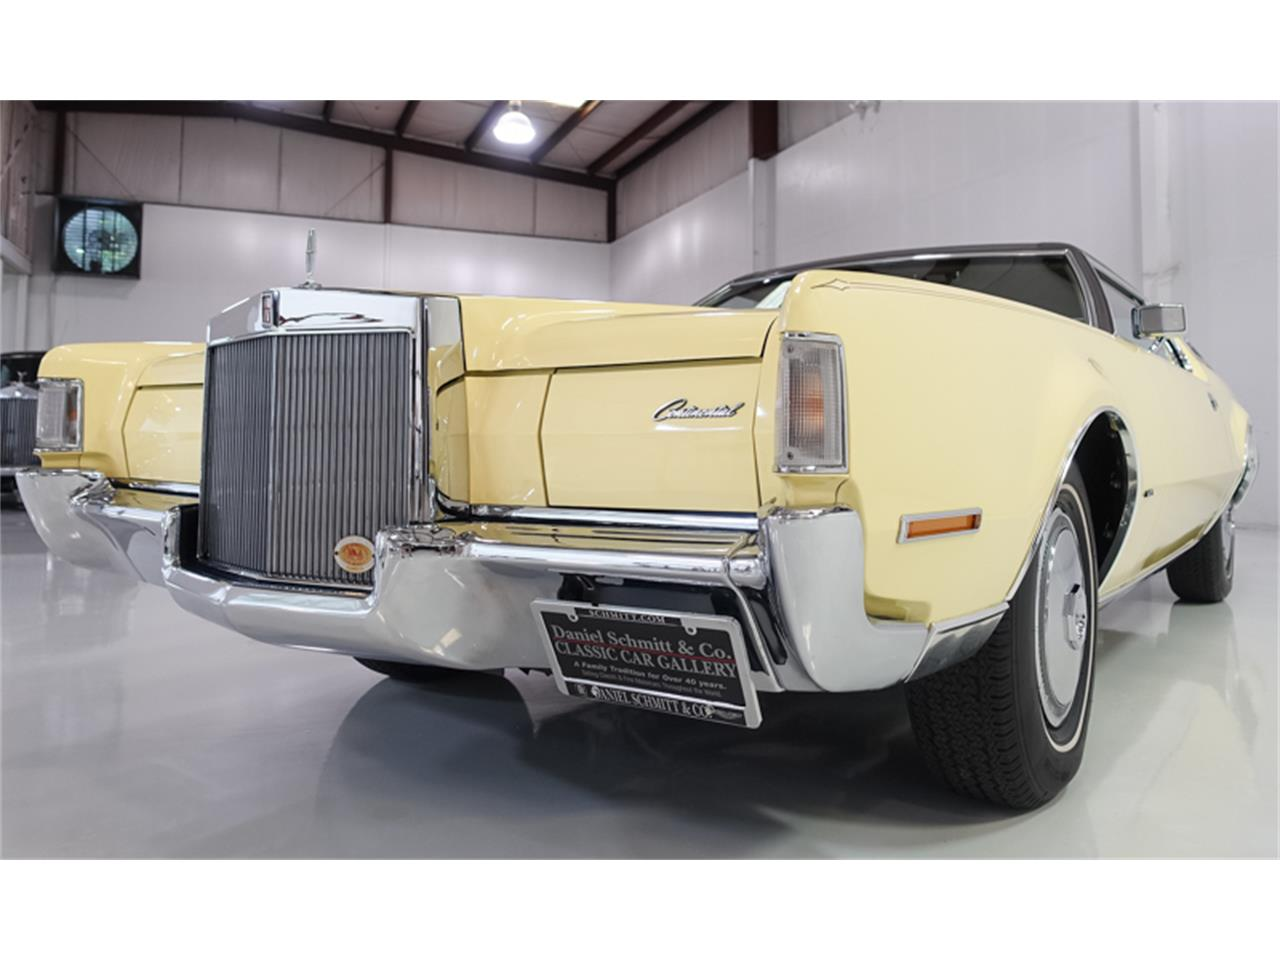 1972 Lincoln Continental Mark IV for sale in St. Louis, MO – photo 18